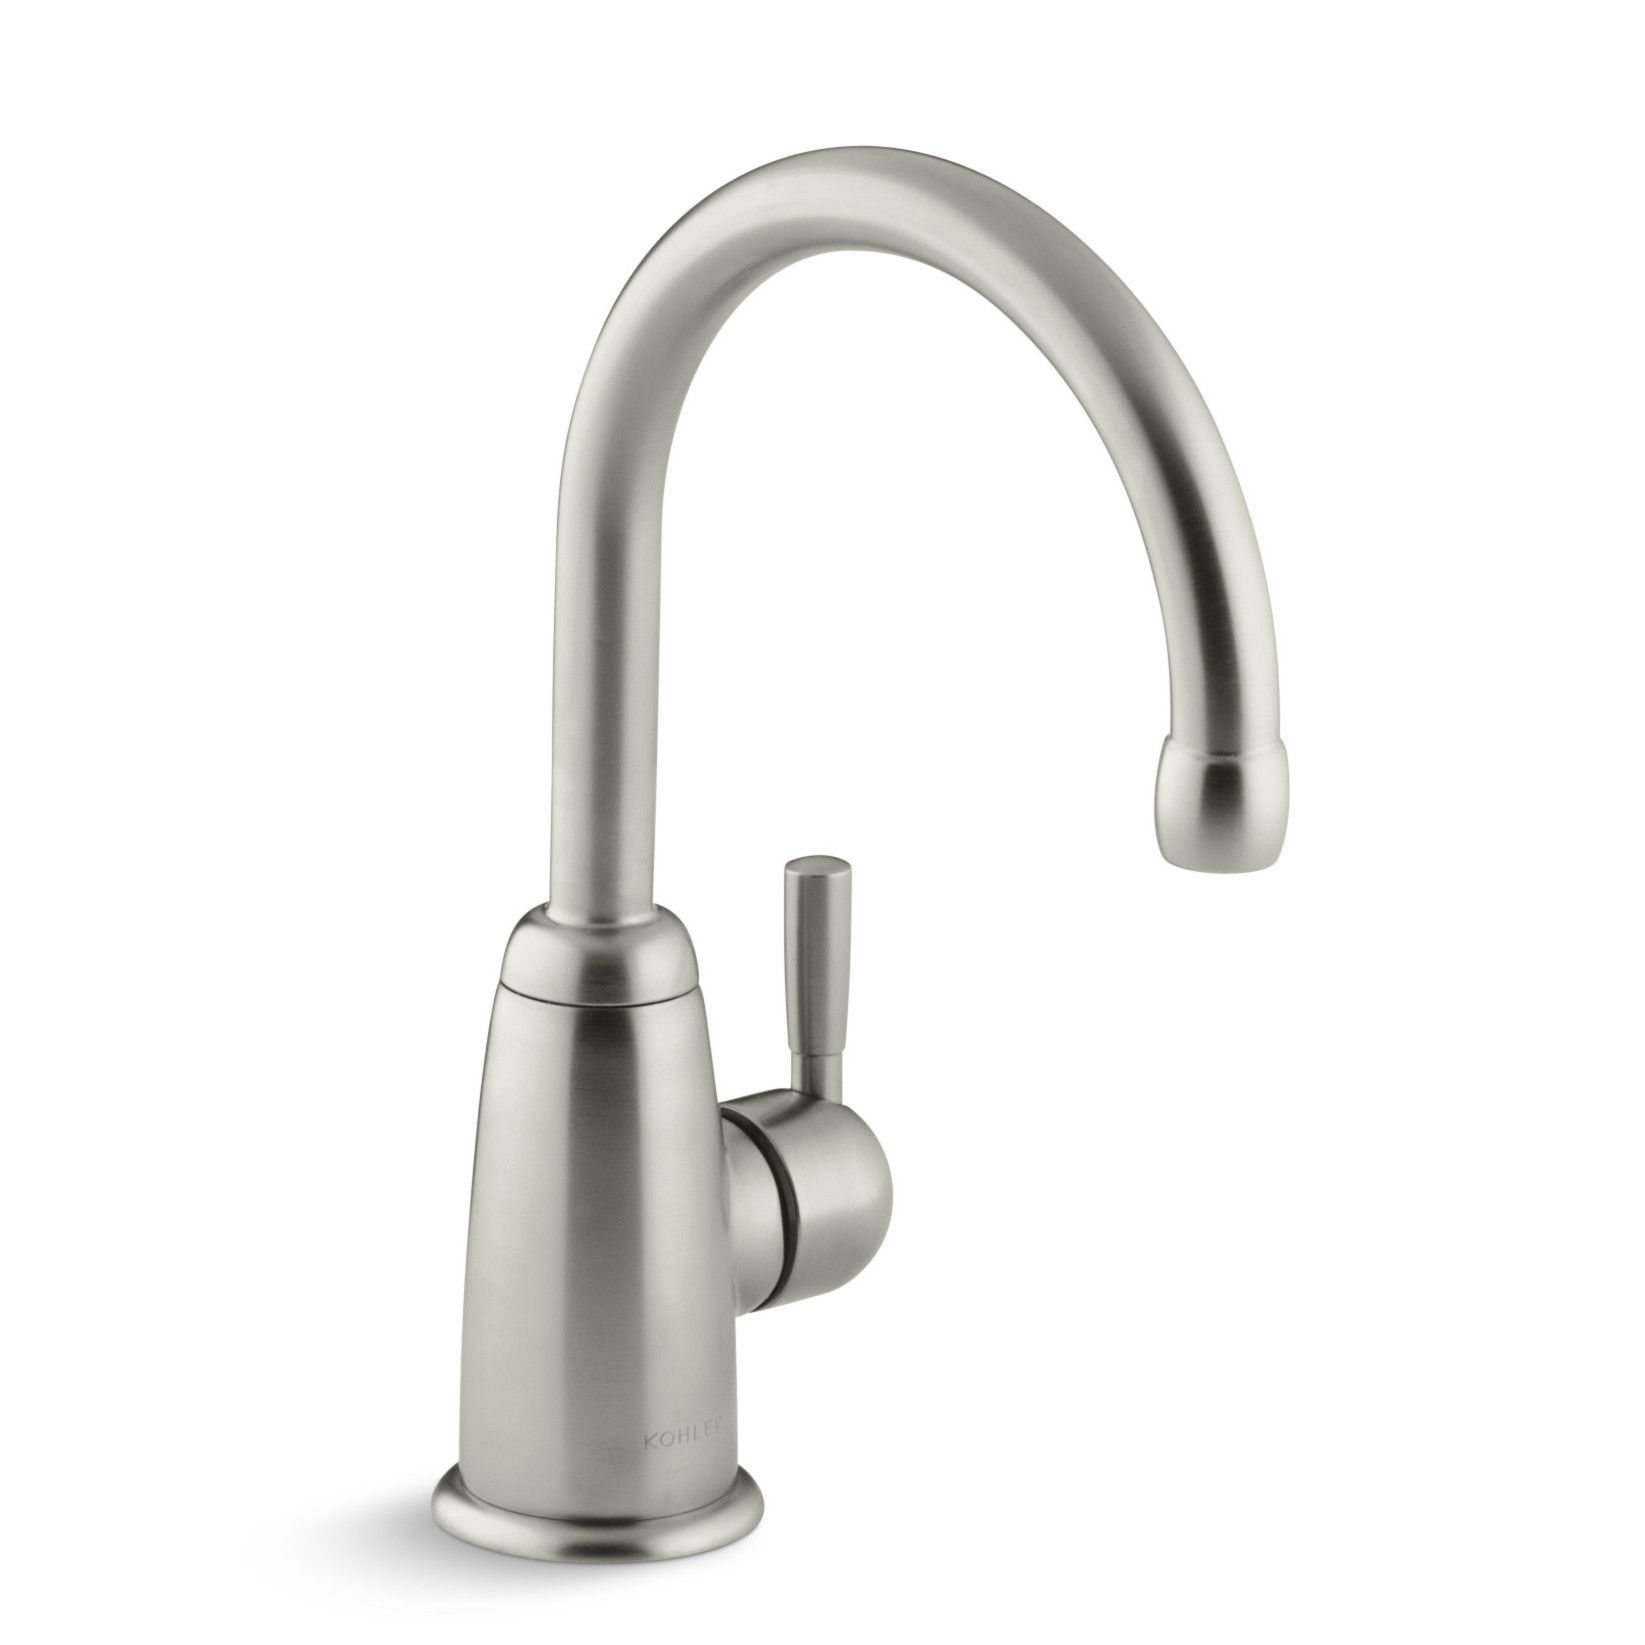 Gibson Standard Widespread Bathroom Faucet Faucet Water Filtration System Bathroom Sink Faucets